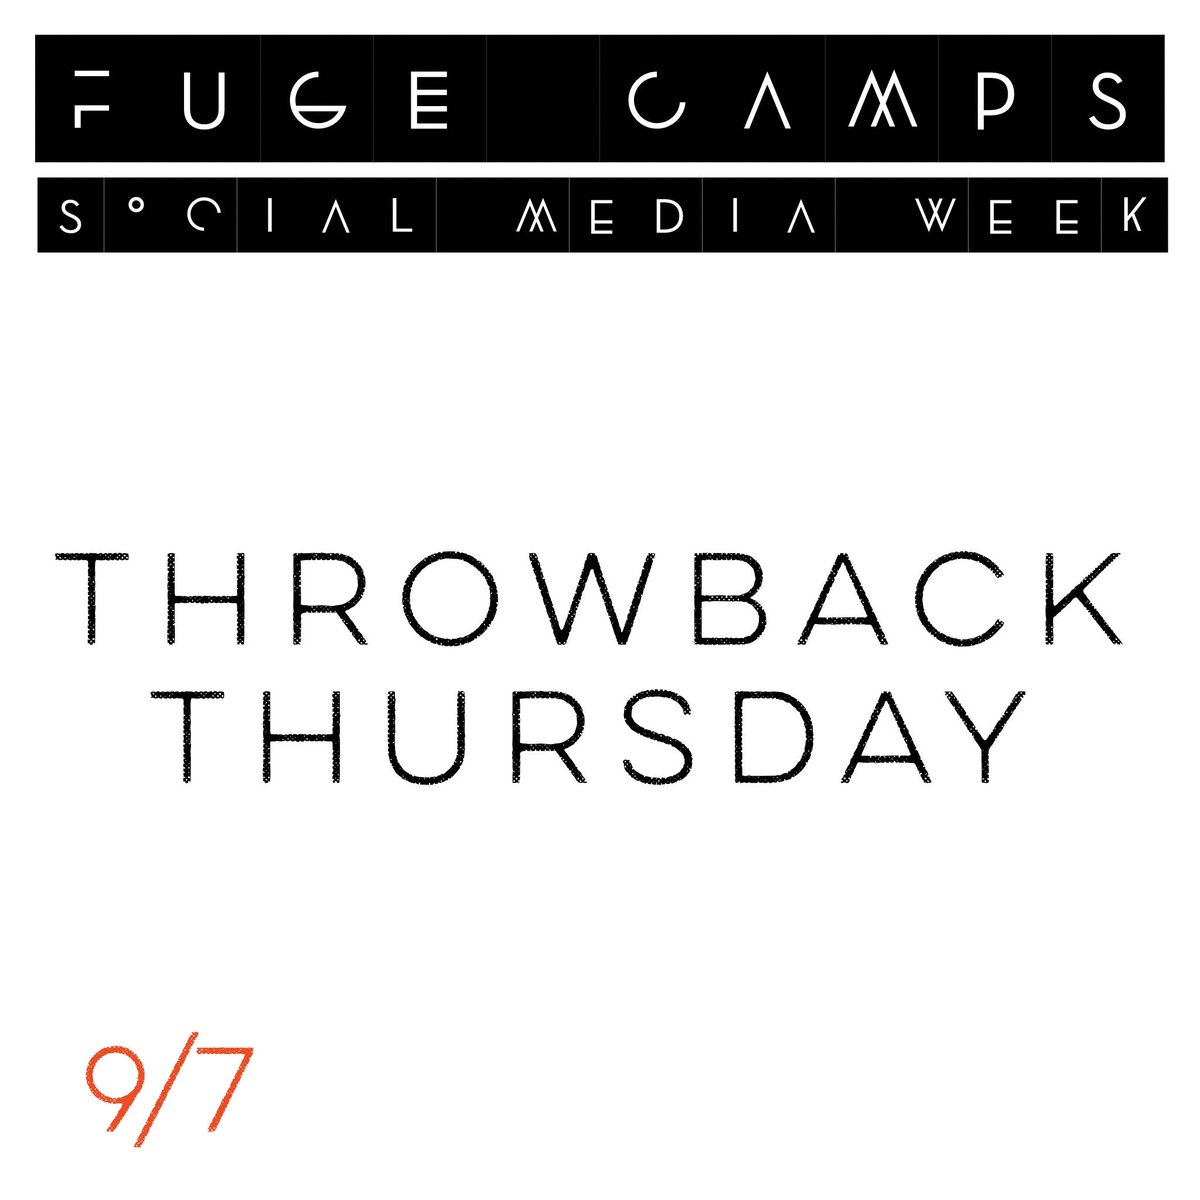 test Twitter Media - It has been so awesome reading your posts sharing what FUGE is, and what FUGE means to you personally. Get ready to walk down memory lane! https://t.co/WX6vWU0Qyh